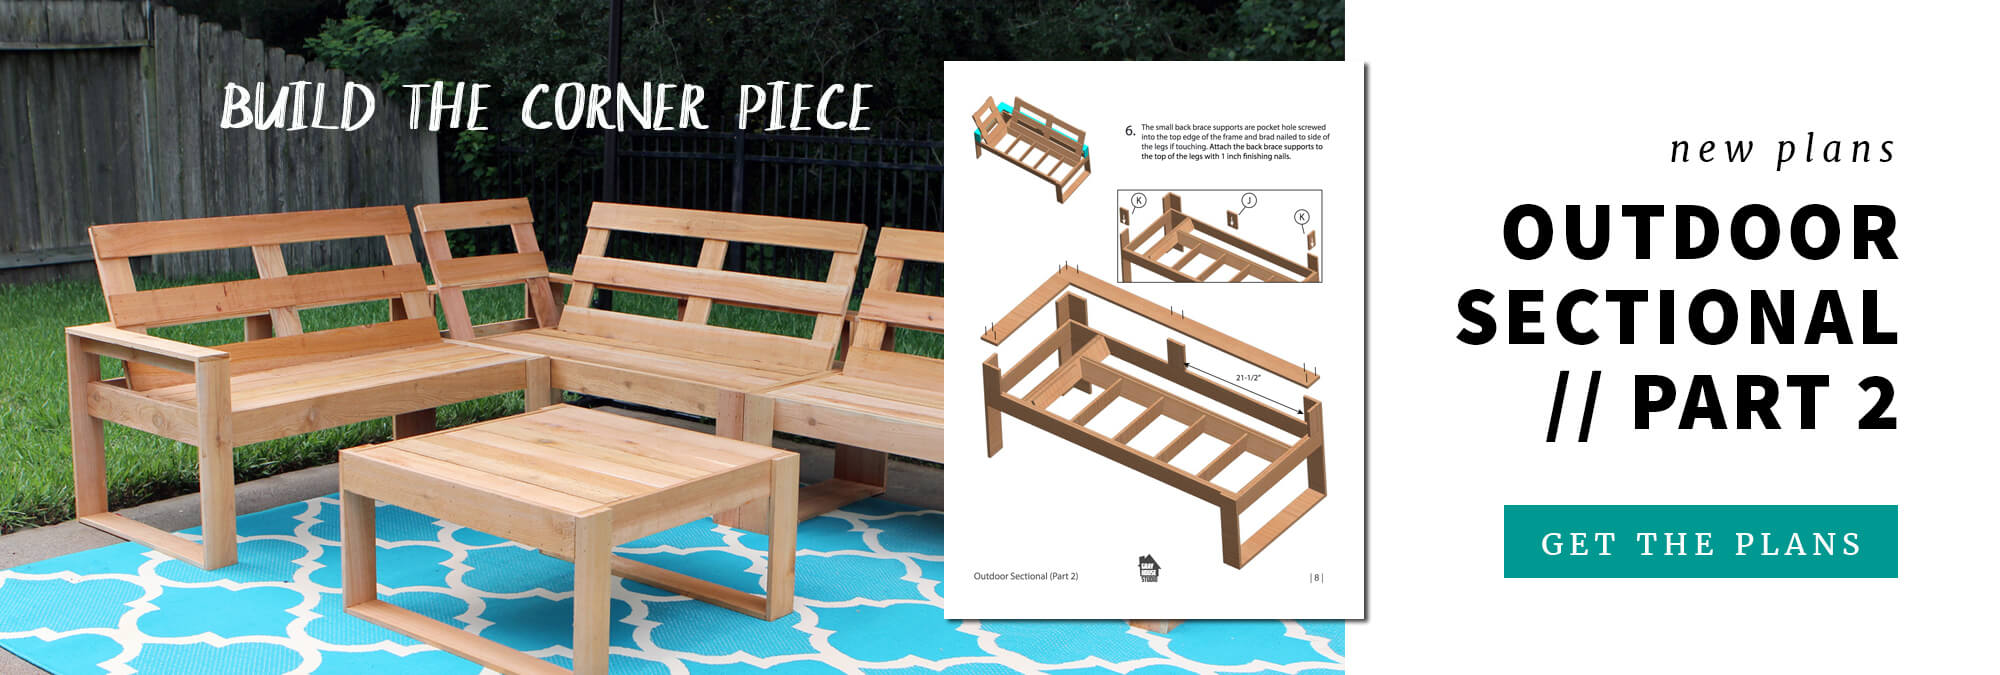 Outdoor Sectional Plans - Part 2